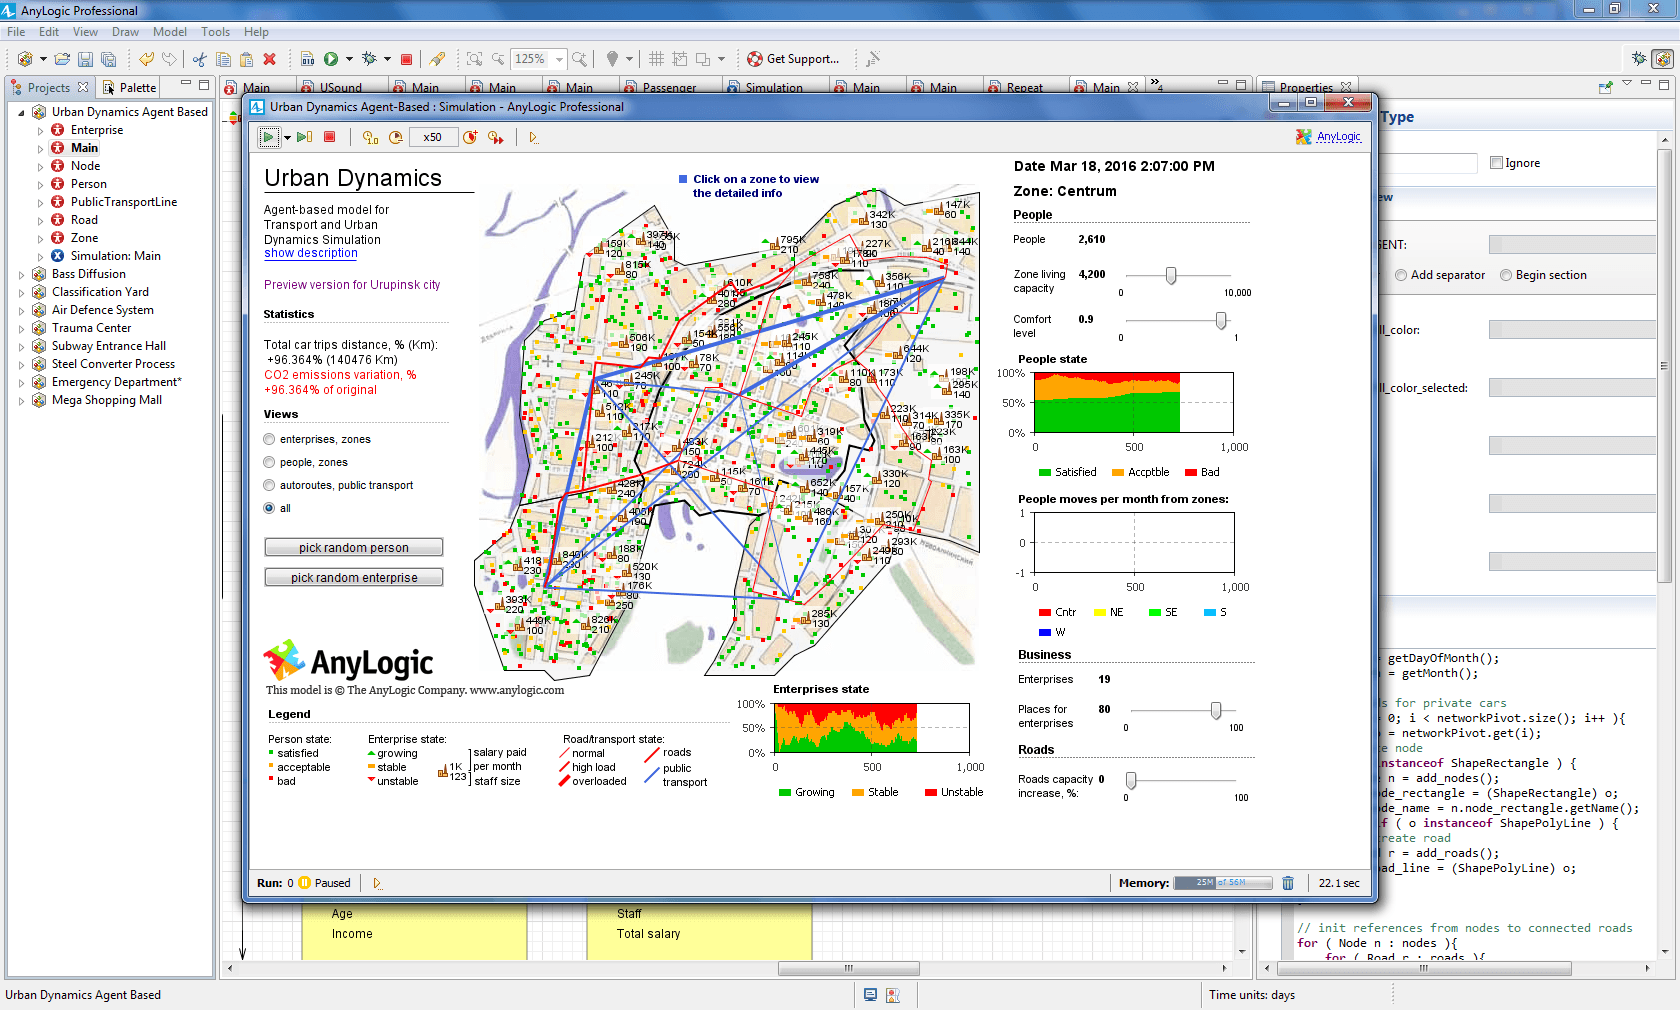 Urban Dynamics Simulation Model